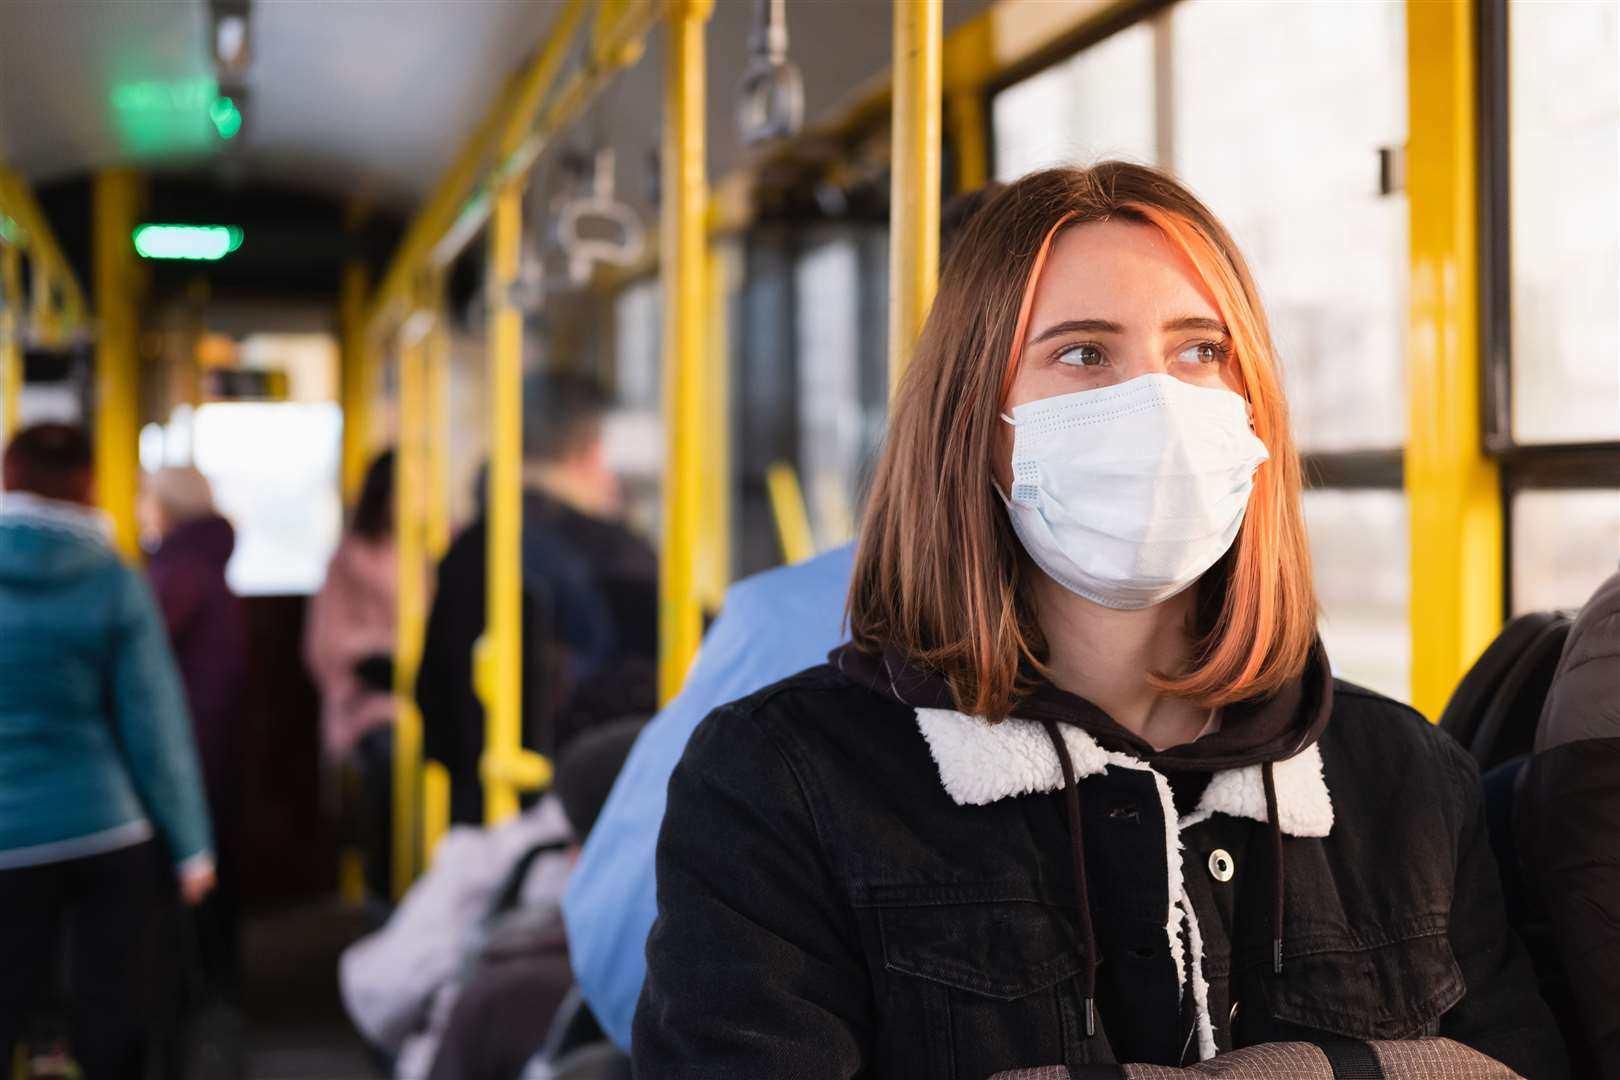 It is expected people won't have to wear a facemask in the majority of places after July 19